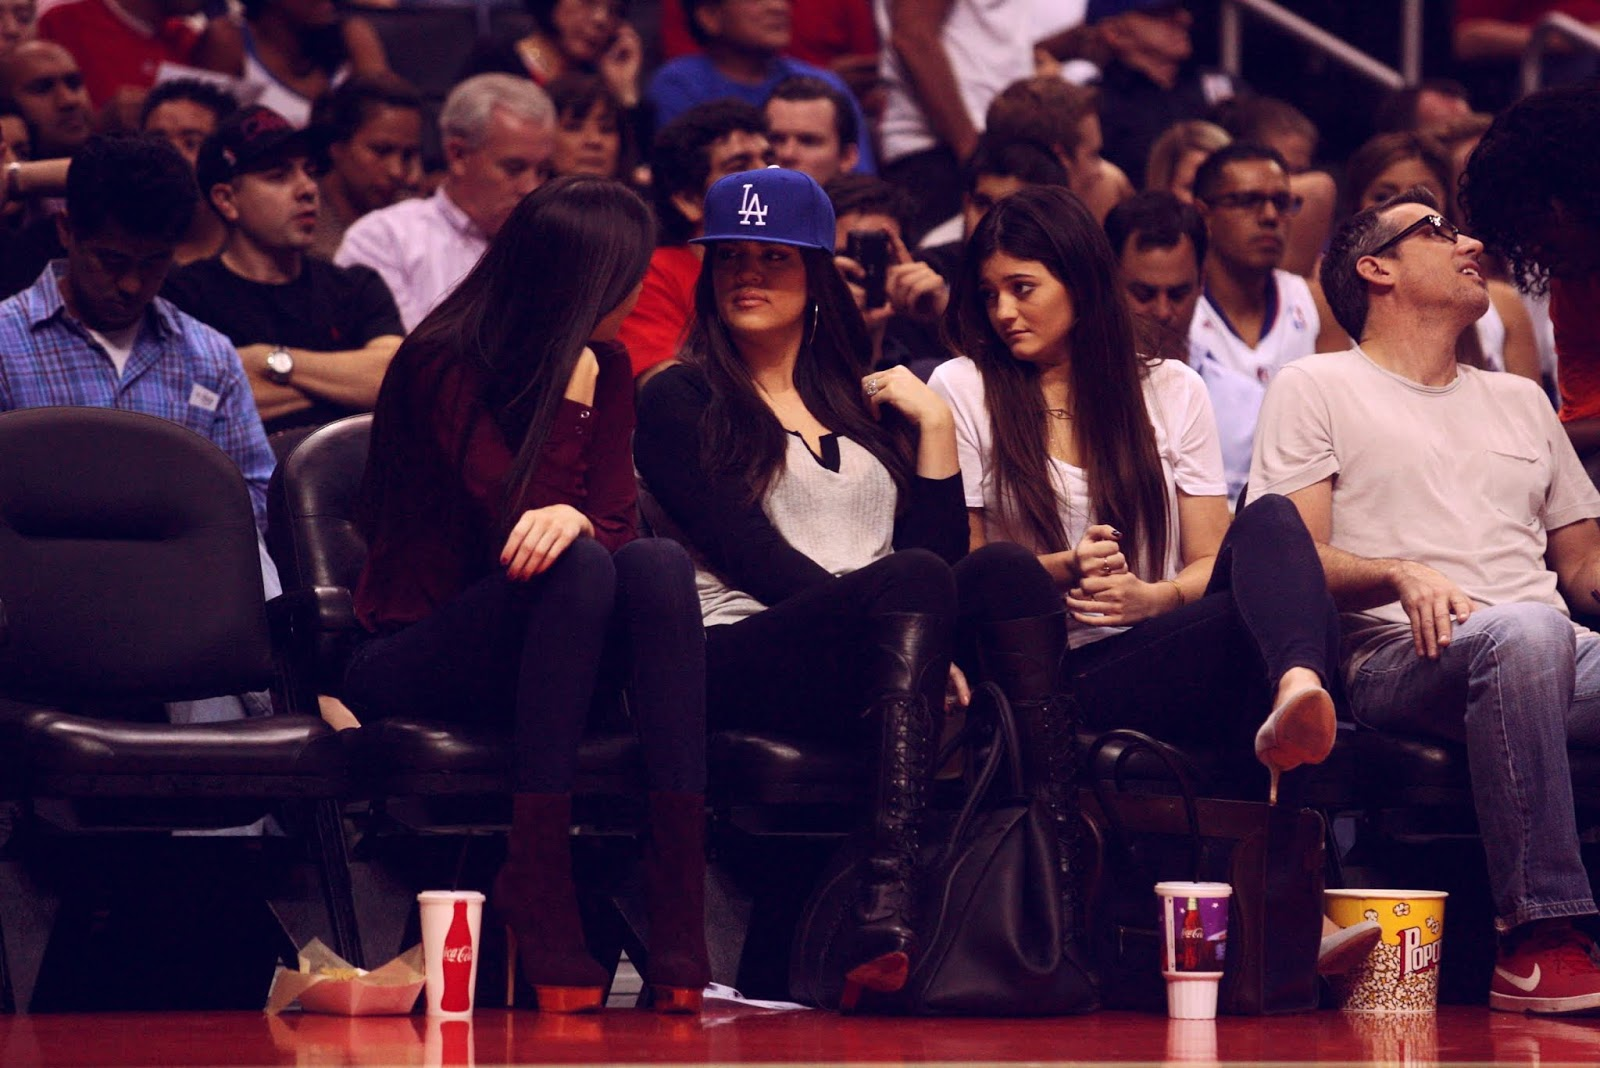 09 - Watching The Los Angeles Clippers Game on October 17, 2012